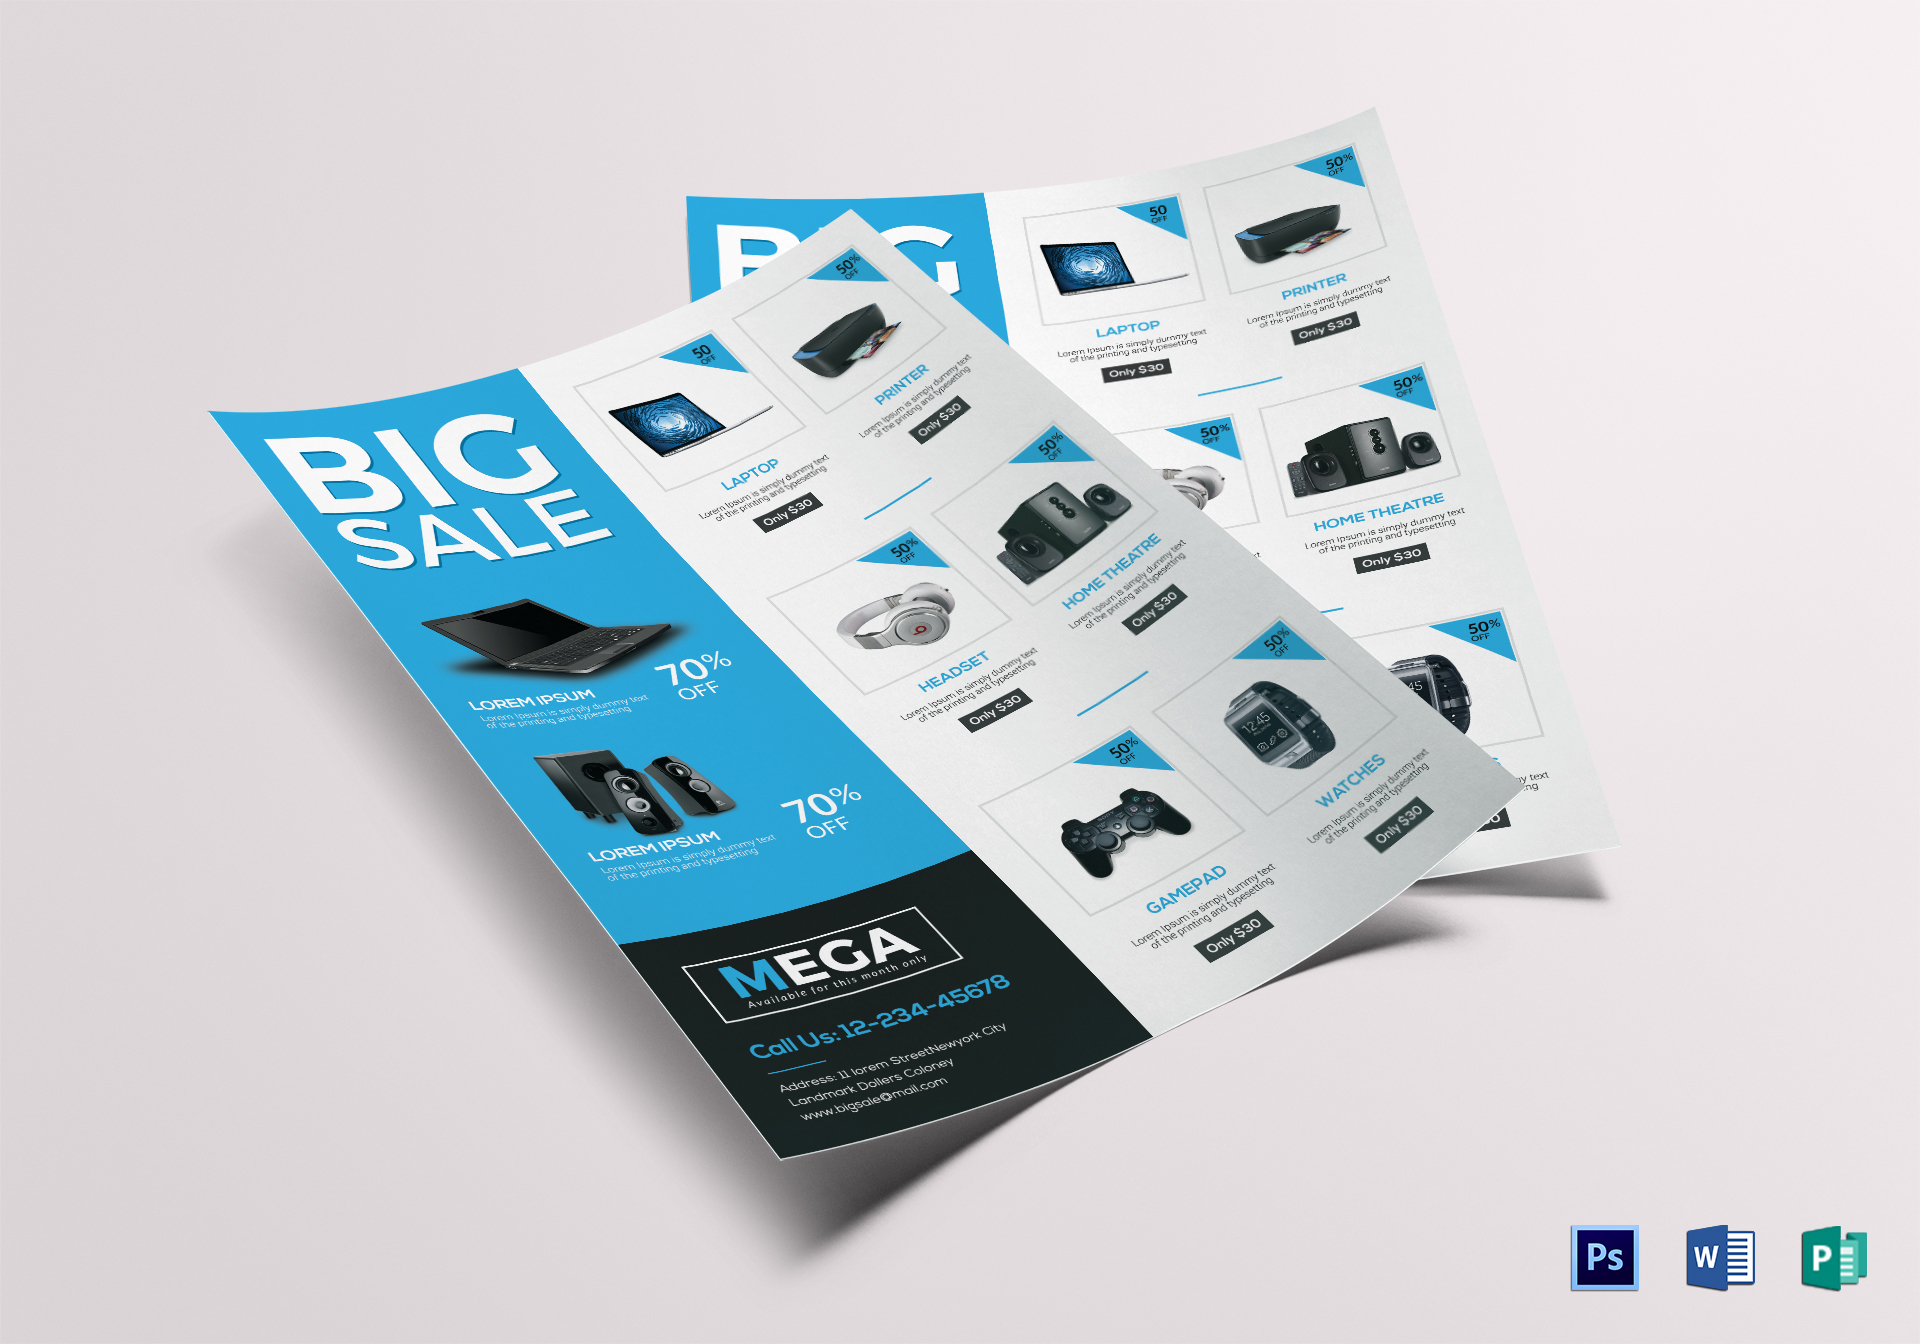 Electronic Big Sale Flyer Design Template in Word, PSD, Publisher